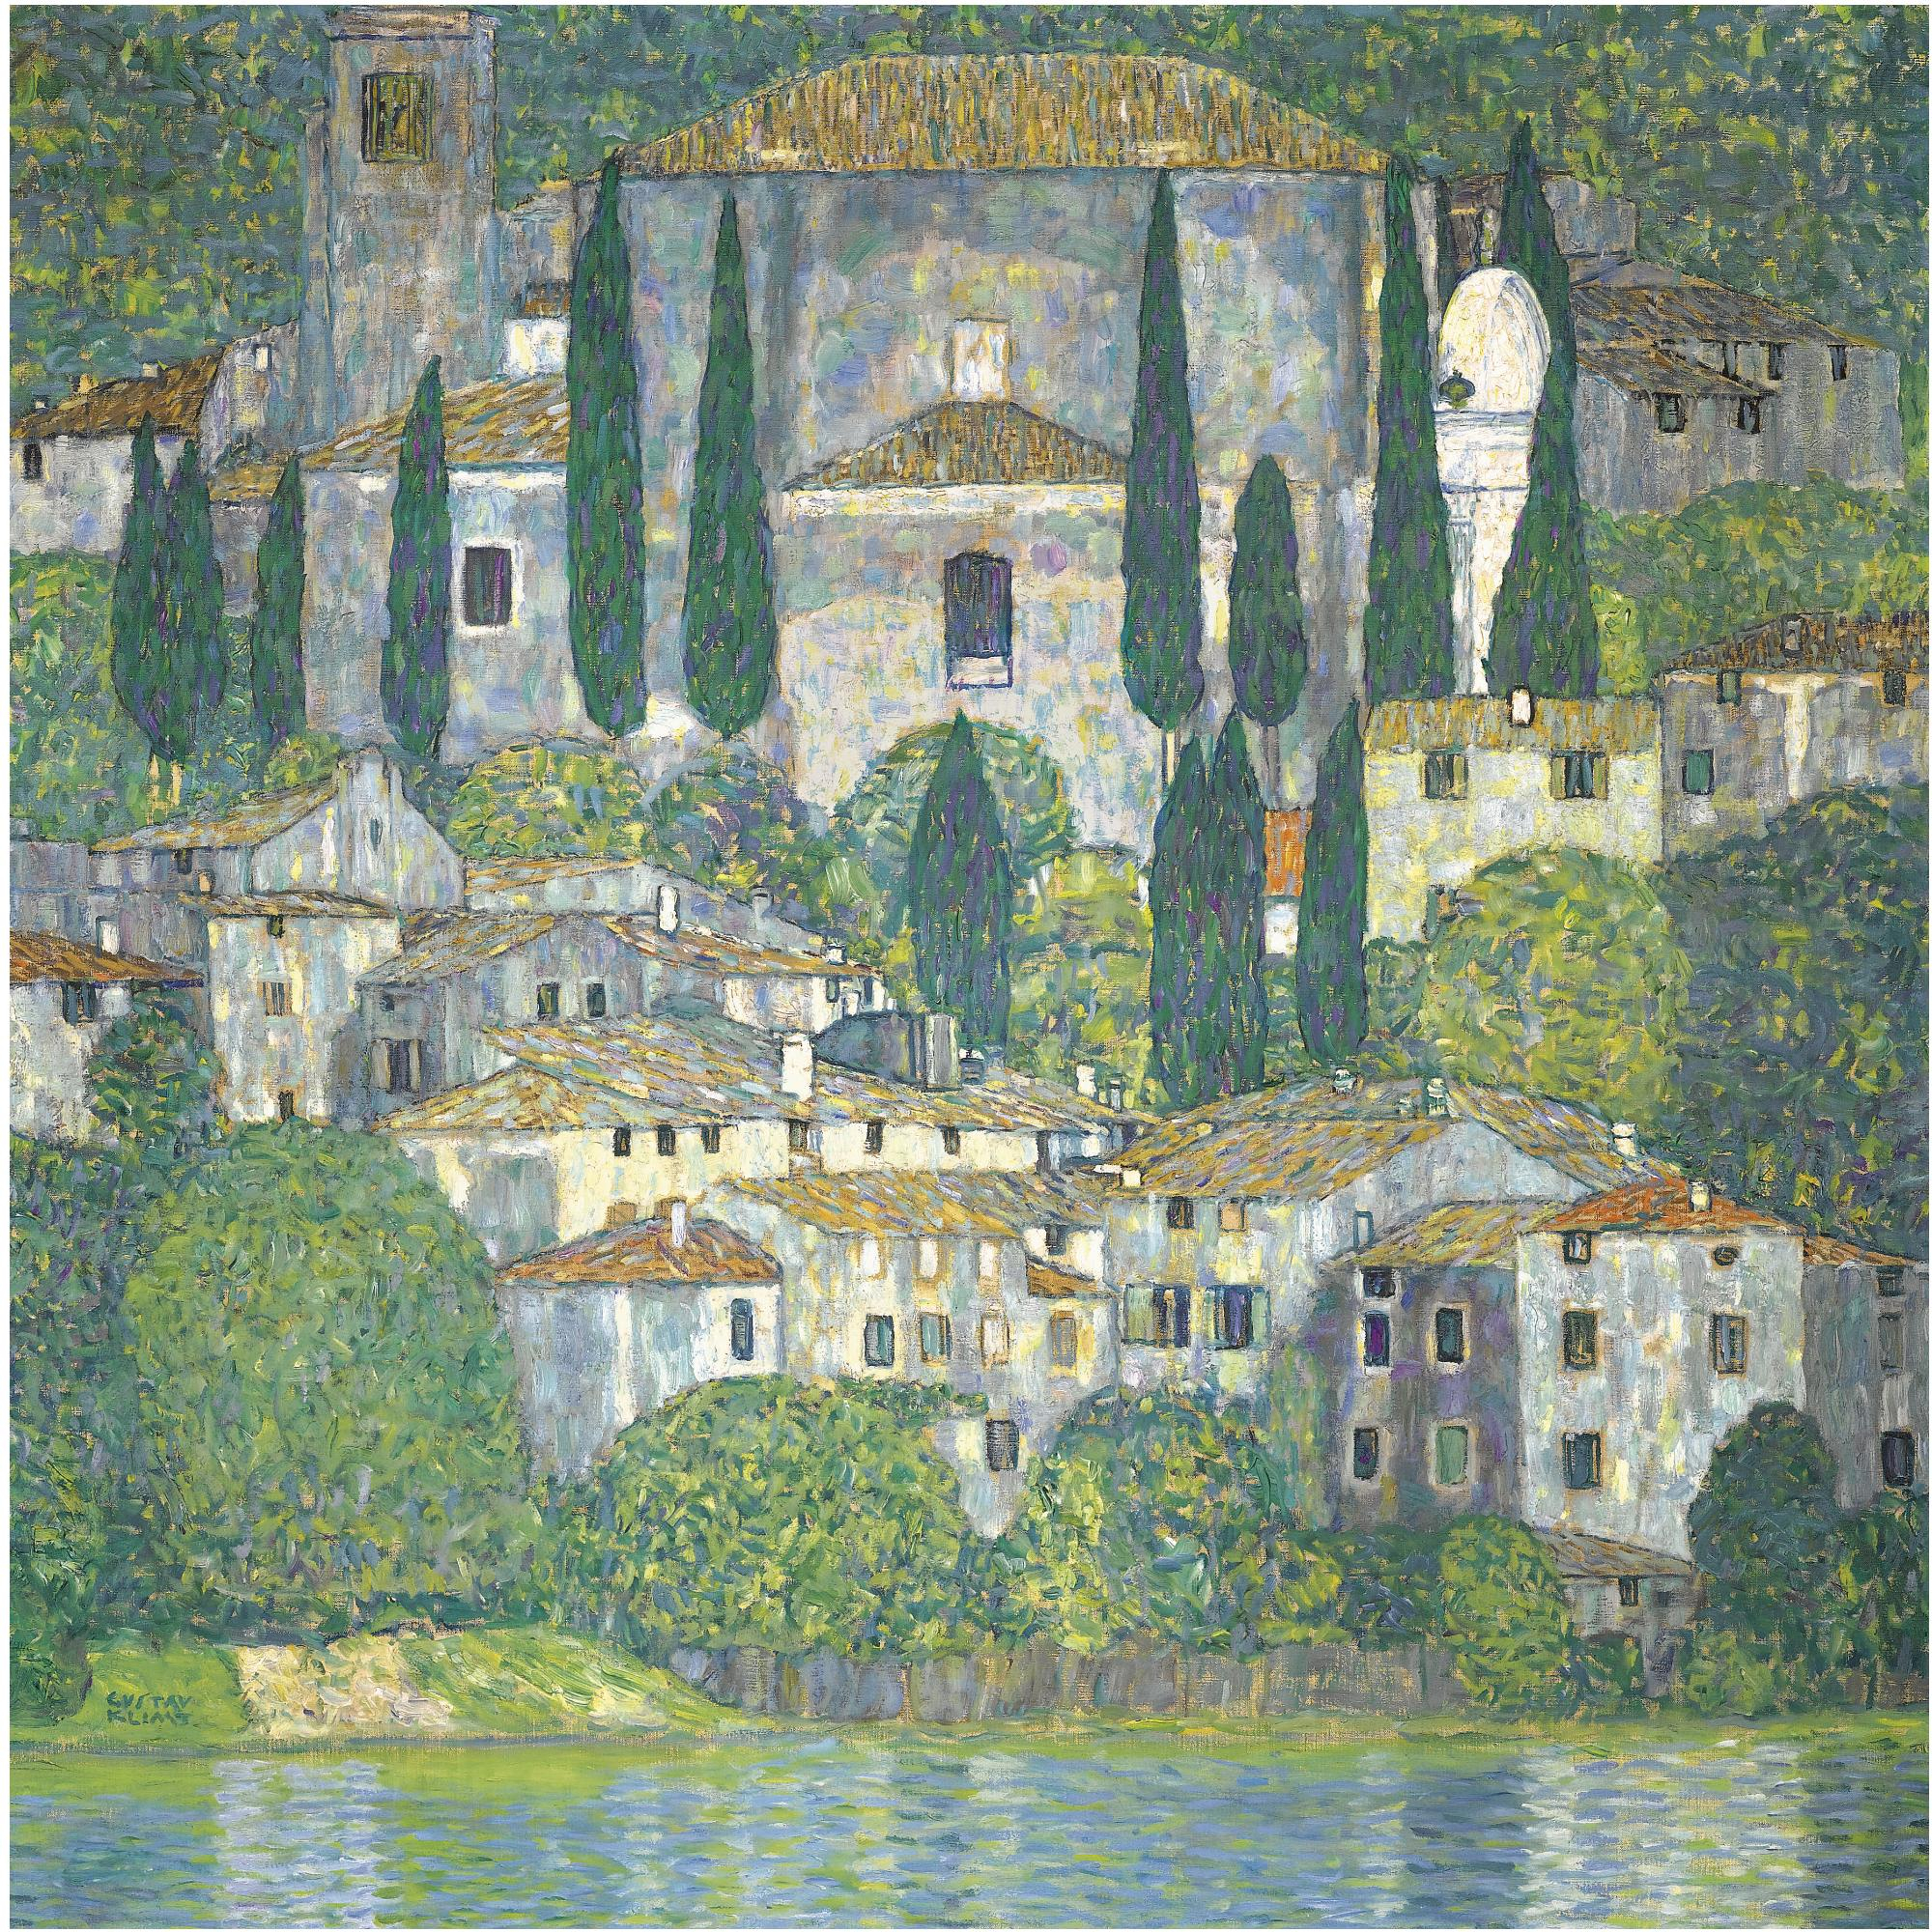 Church in Cassone, Landscape with Cypresses, by Gustav Klimt, 1913